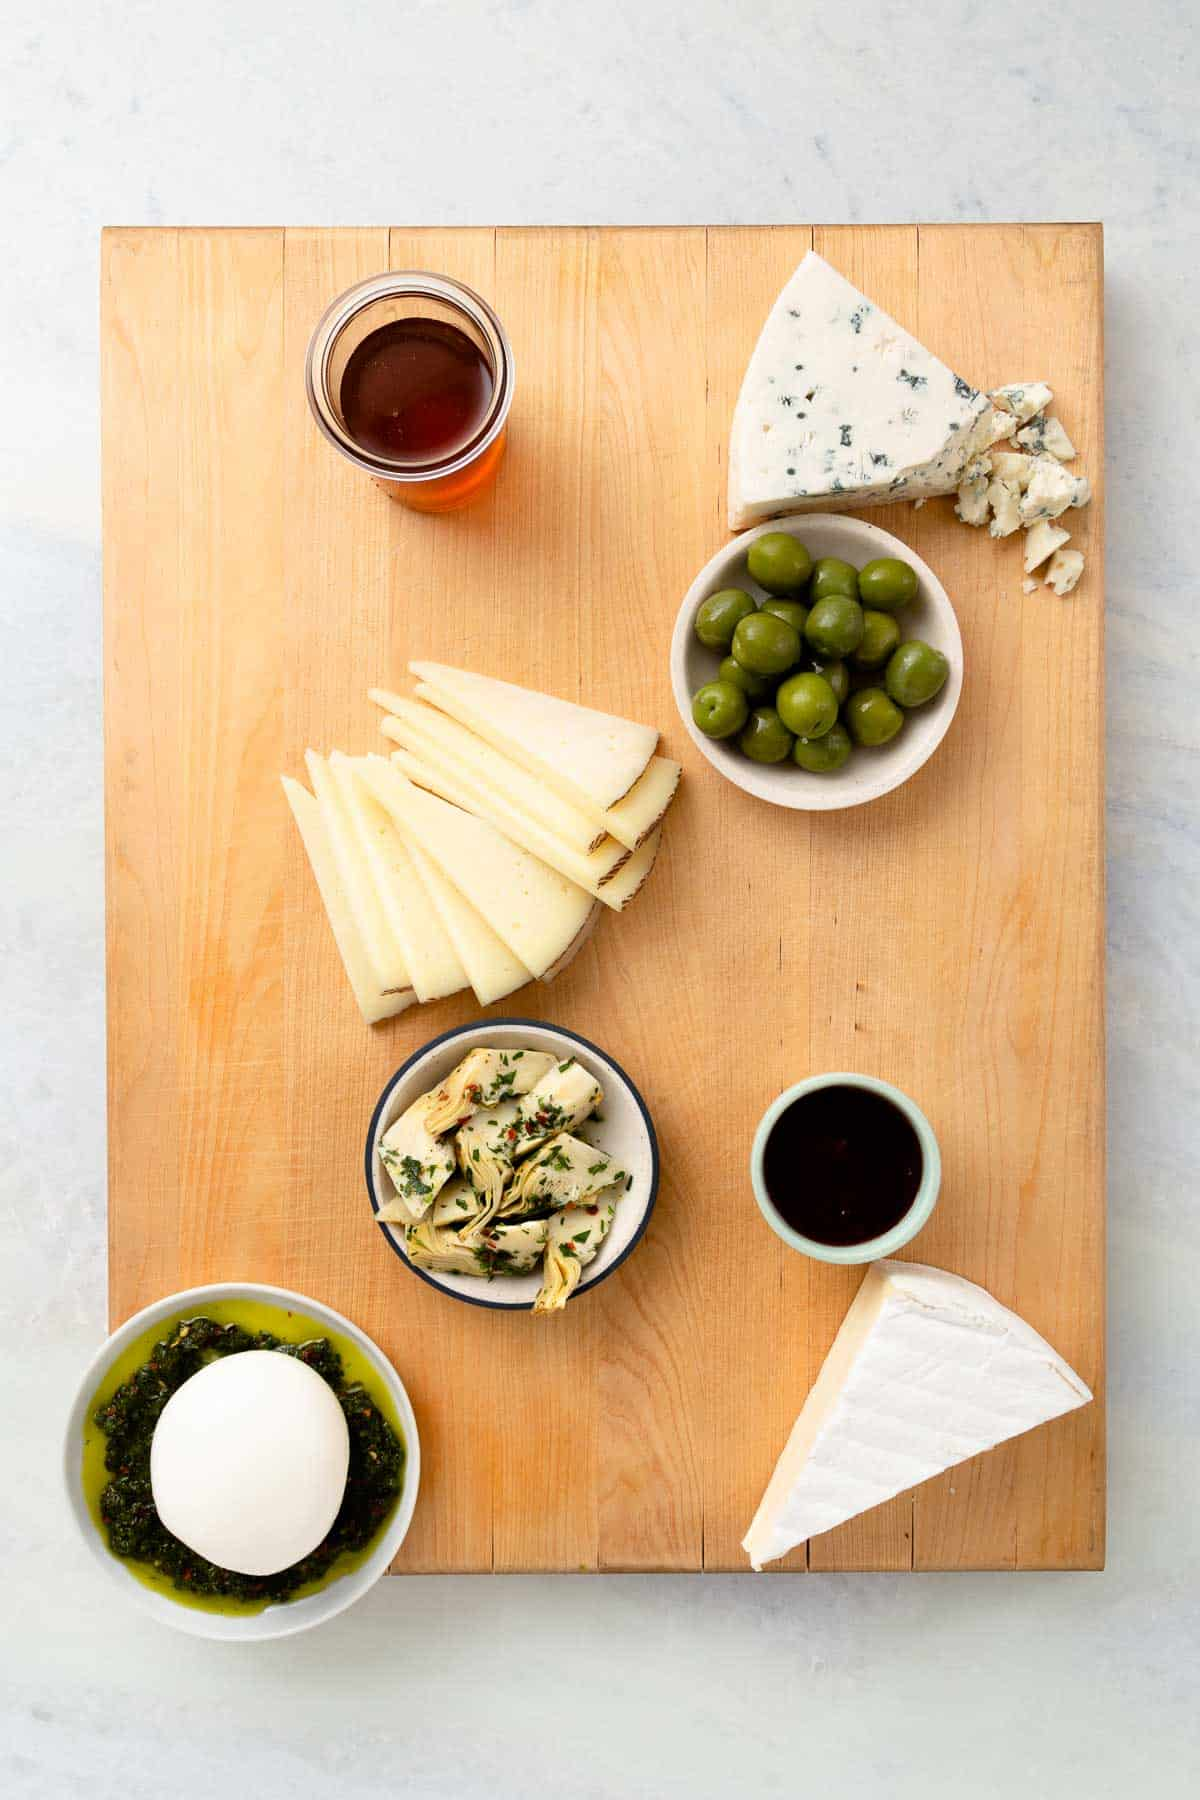 filling a large wood board with green olives, jam, and white cheeses